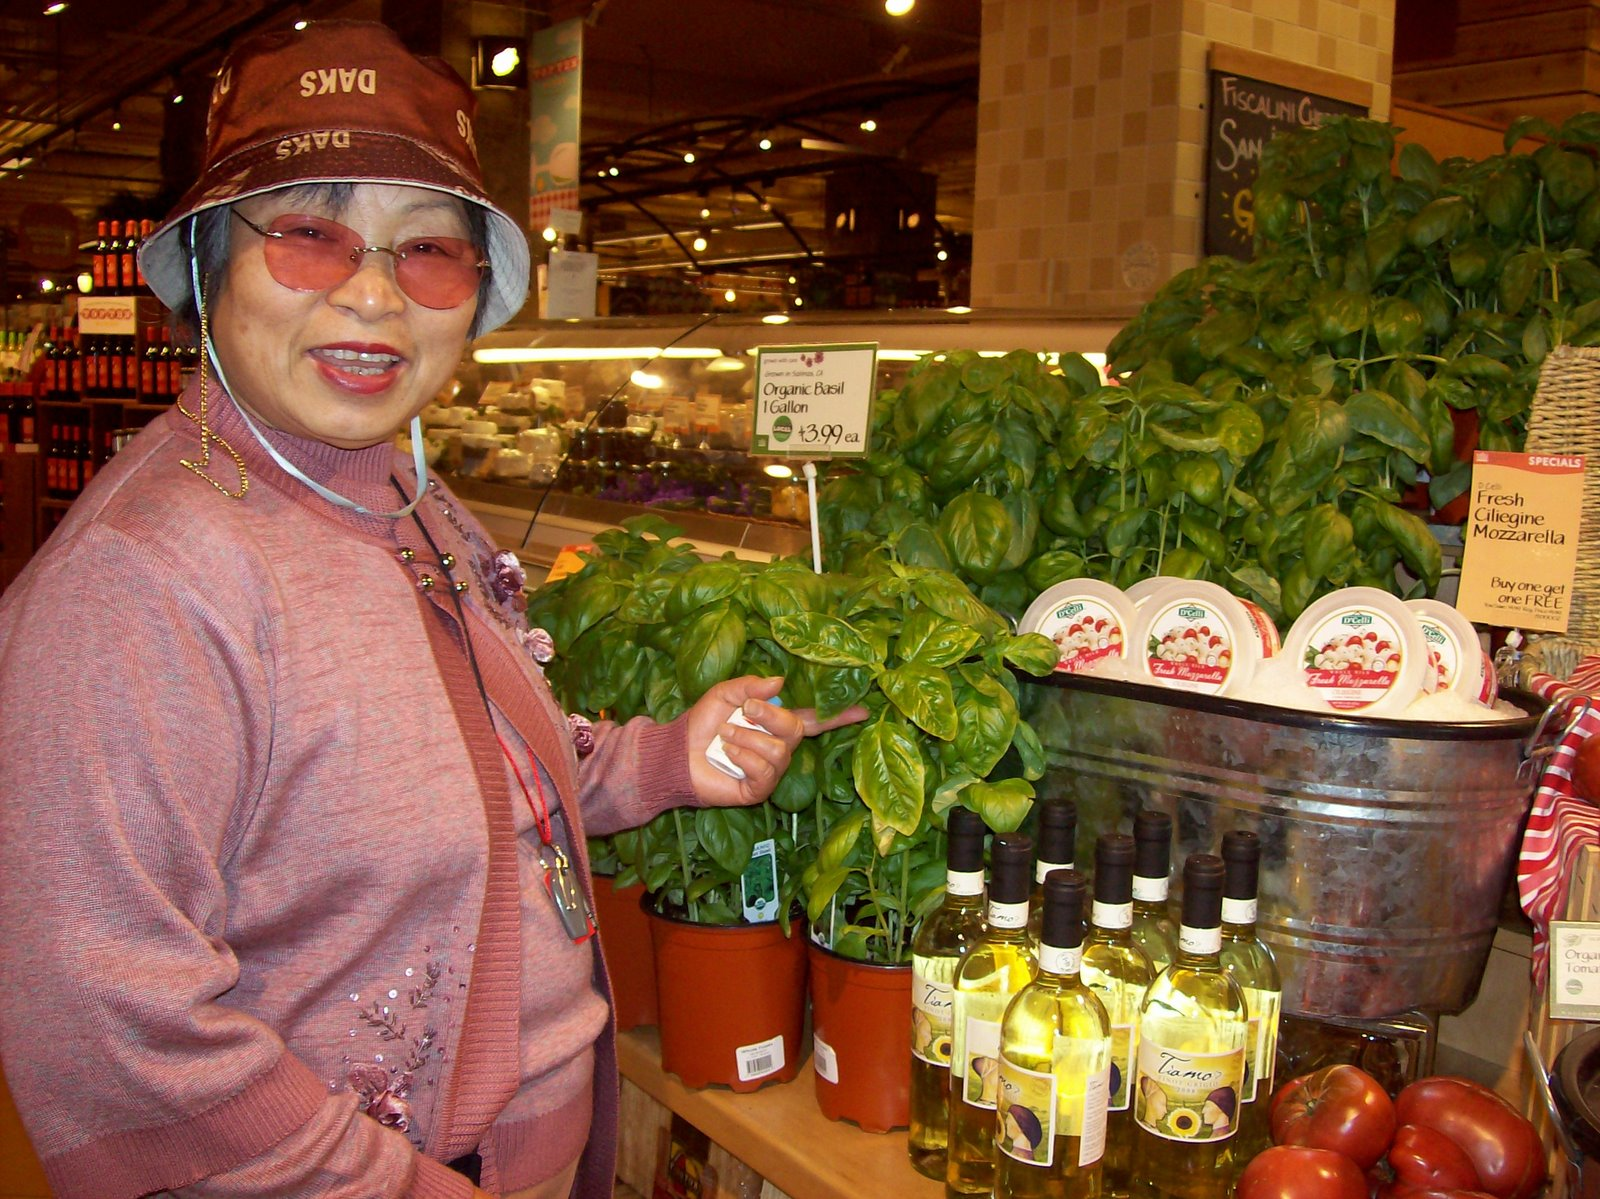 Shopping trip to the Whole food 016.jpg